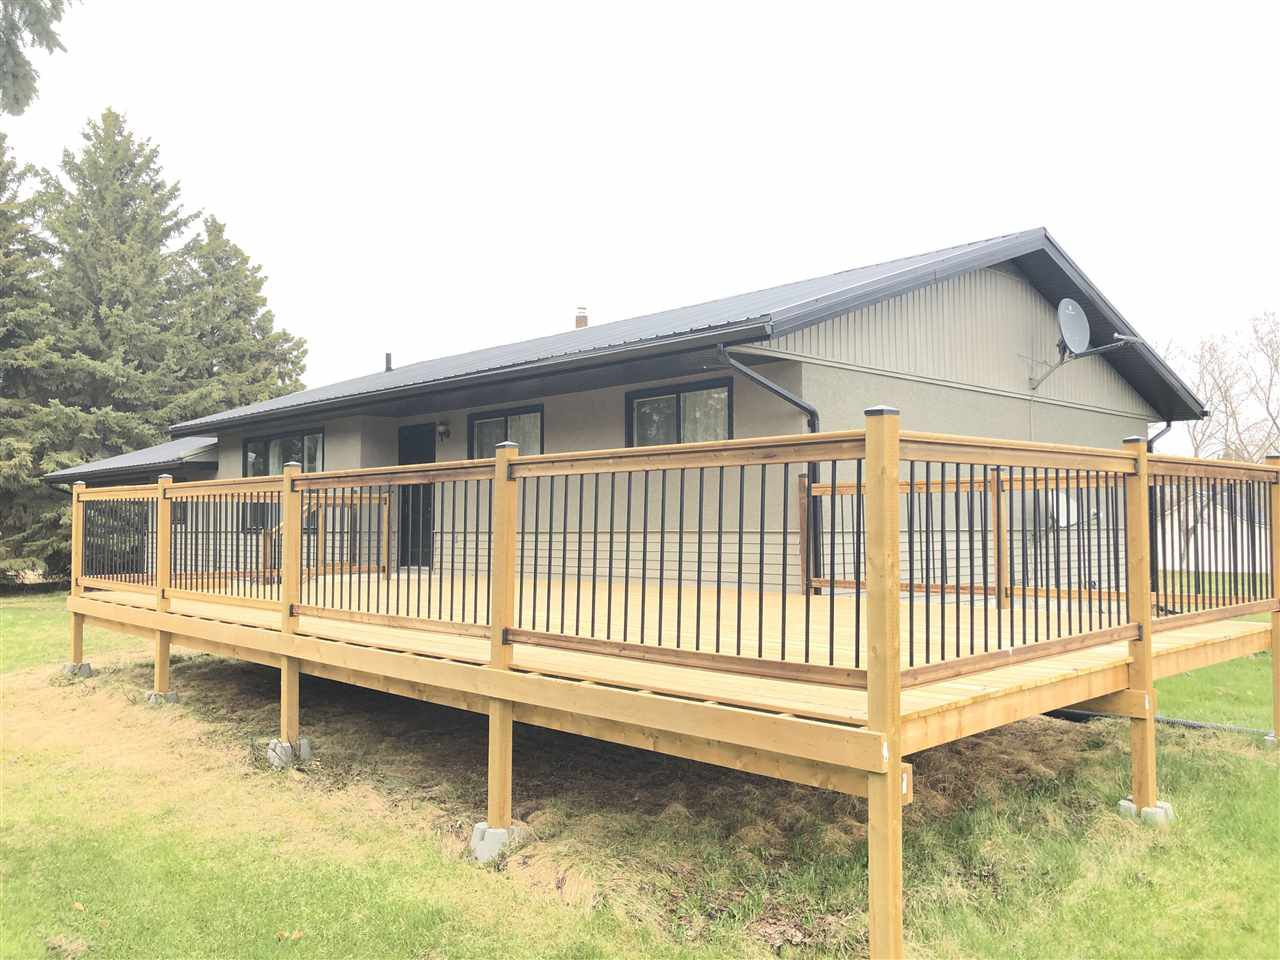 Main Photo: 61331 RGE RD 255: Rural Westlock County House for sale : MLS®# E4120663